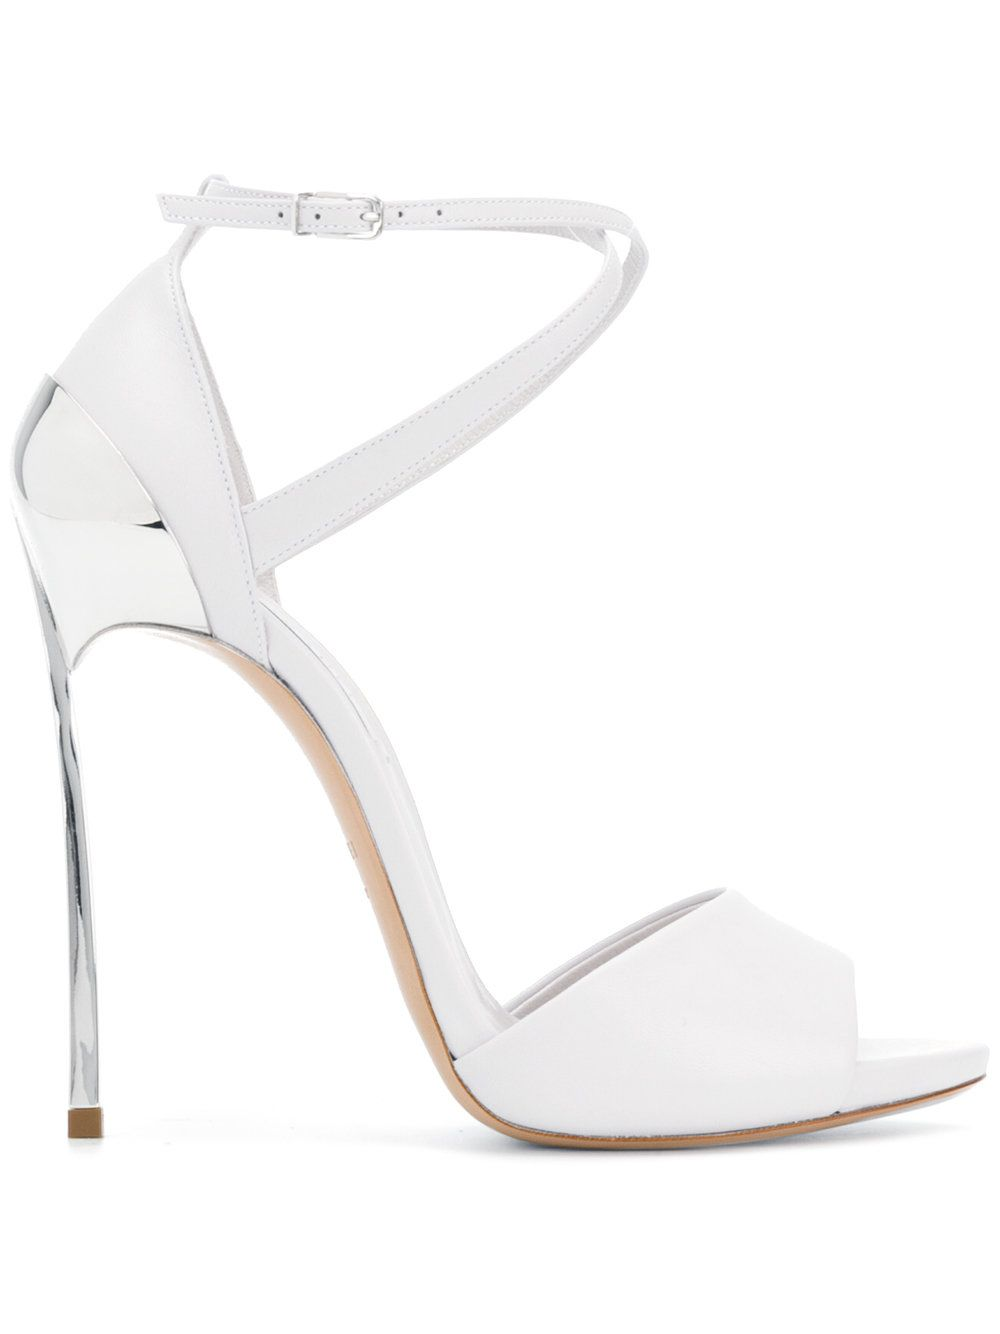 434276a48 CASADEI WHITE.  casadei  shoes